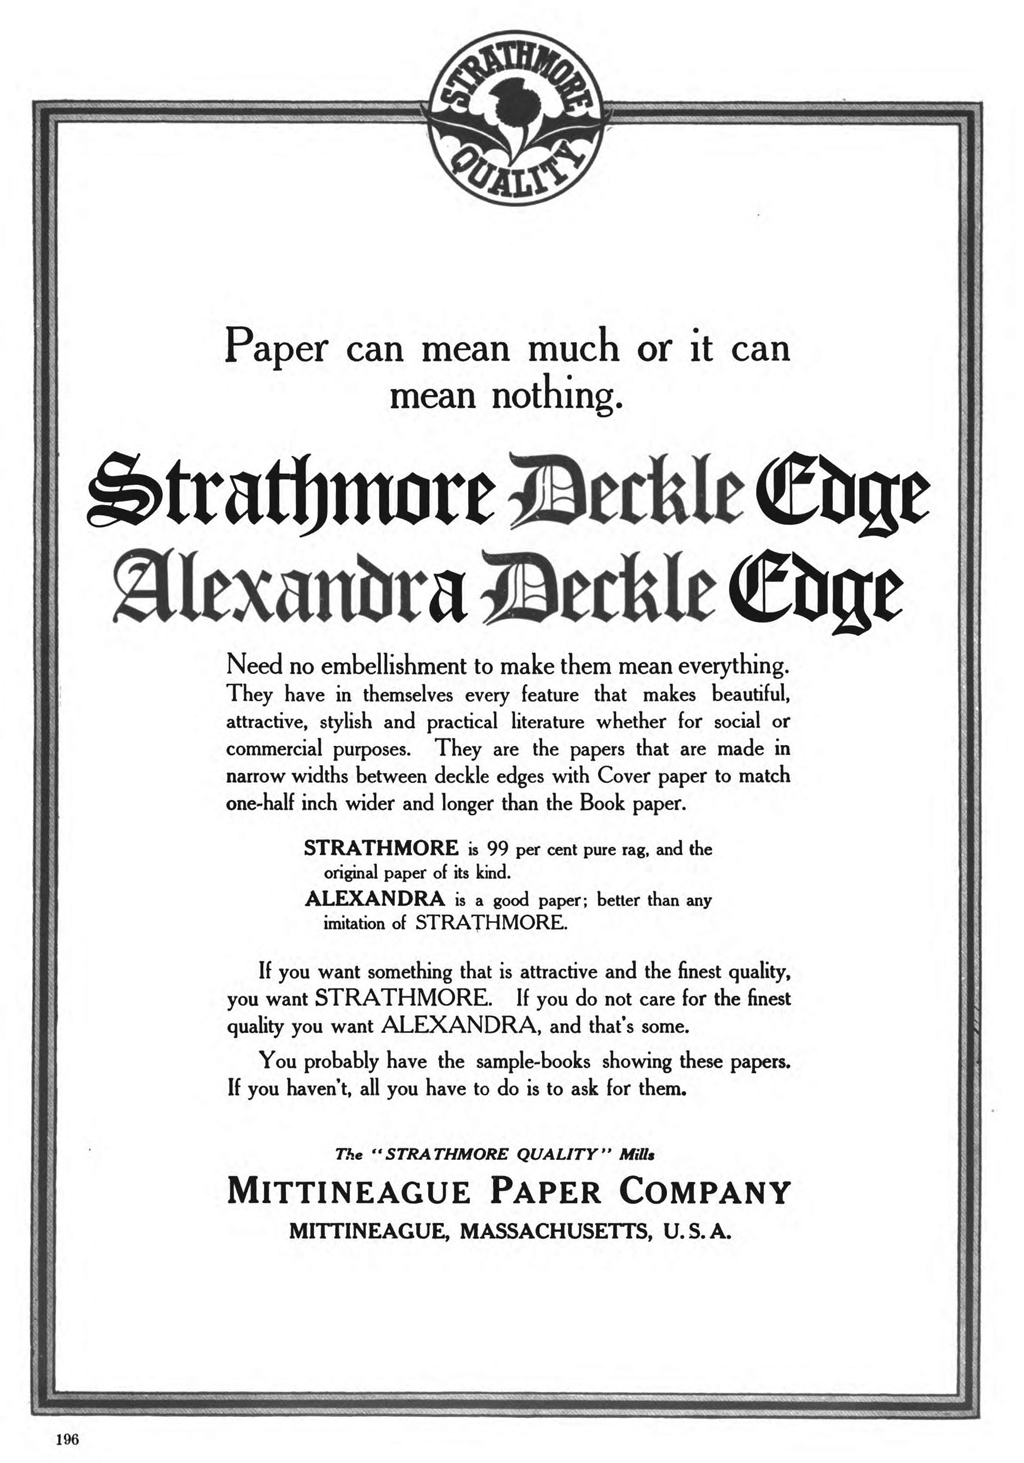 Strathmore Deckle Edge and Alexandra Deckle Edge papers advertisement in The Inland Printer (May 1909), p. 196.